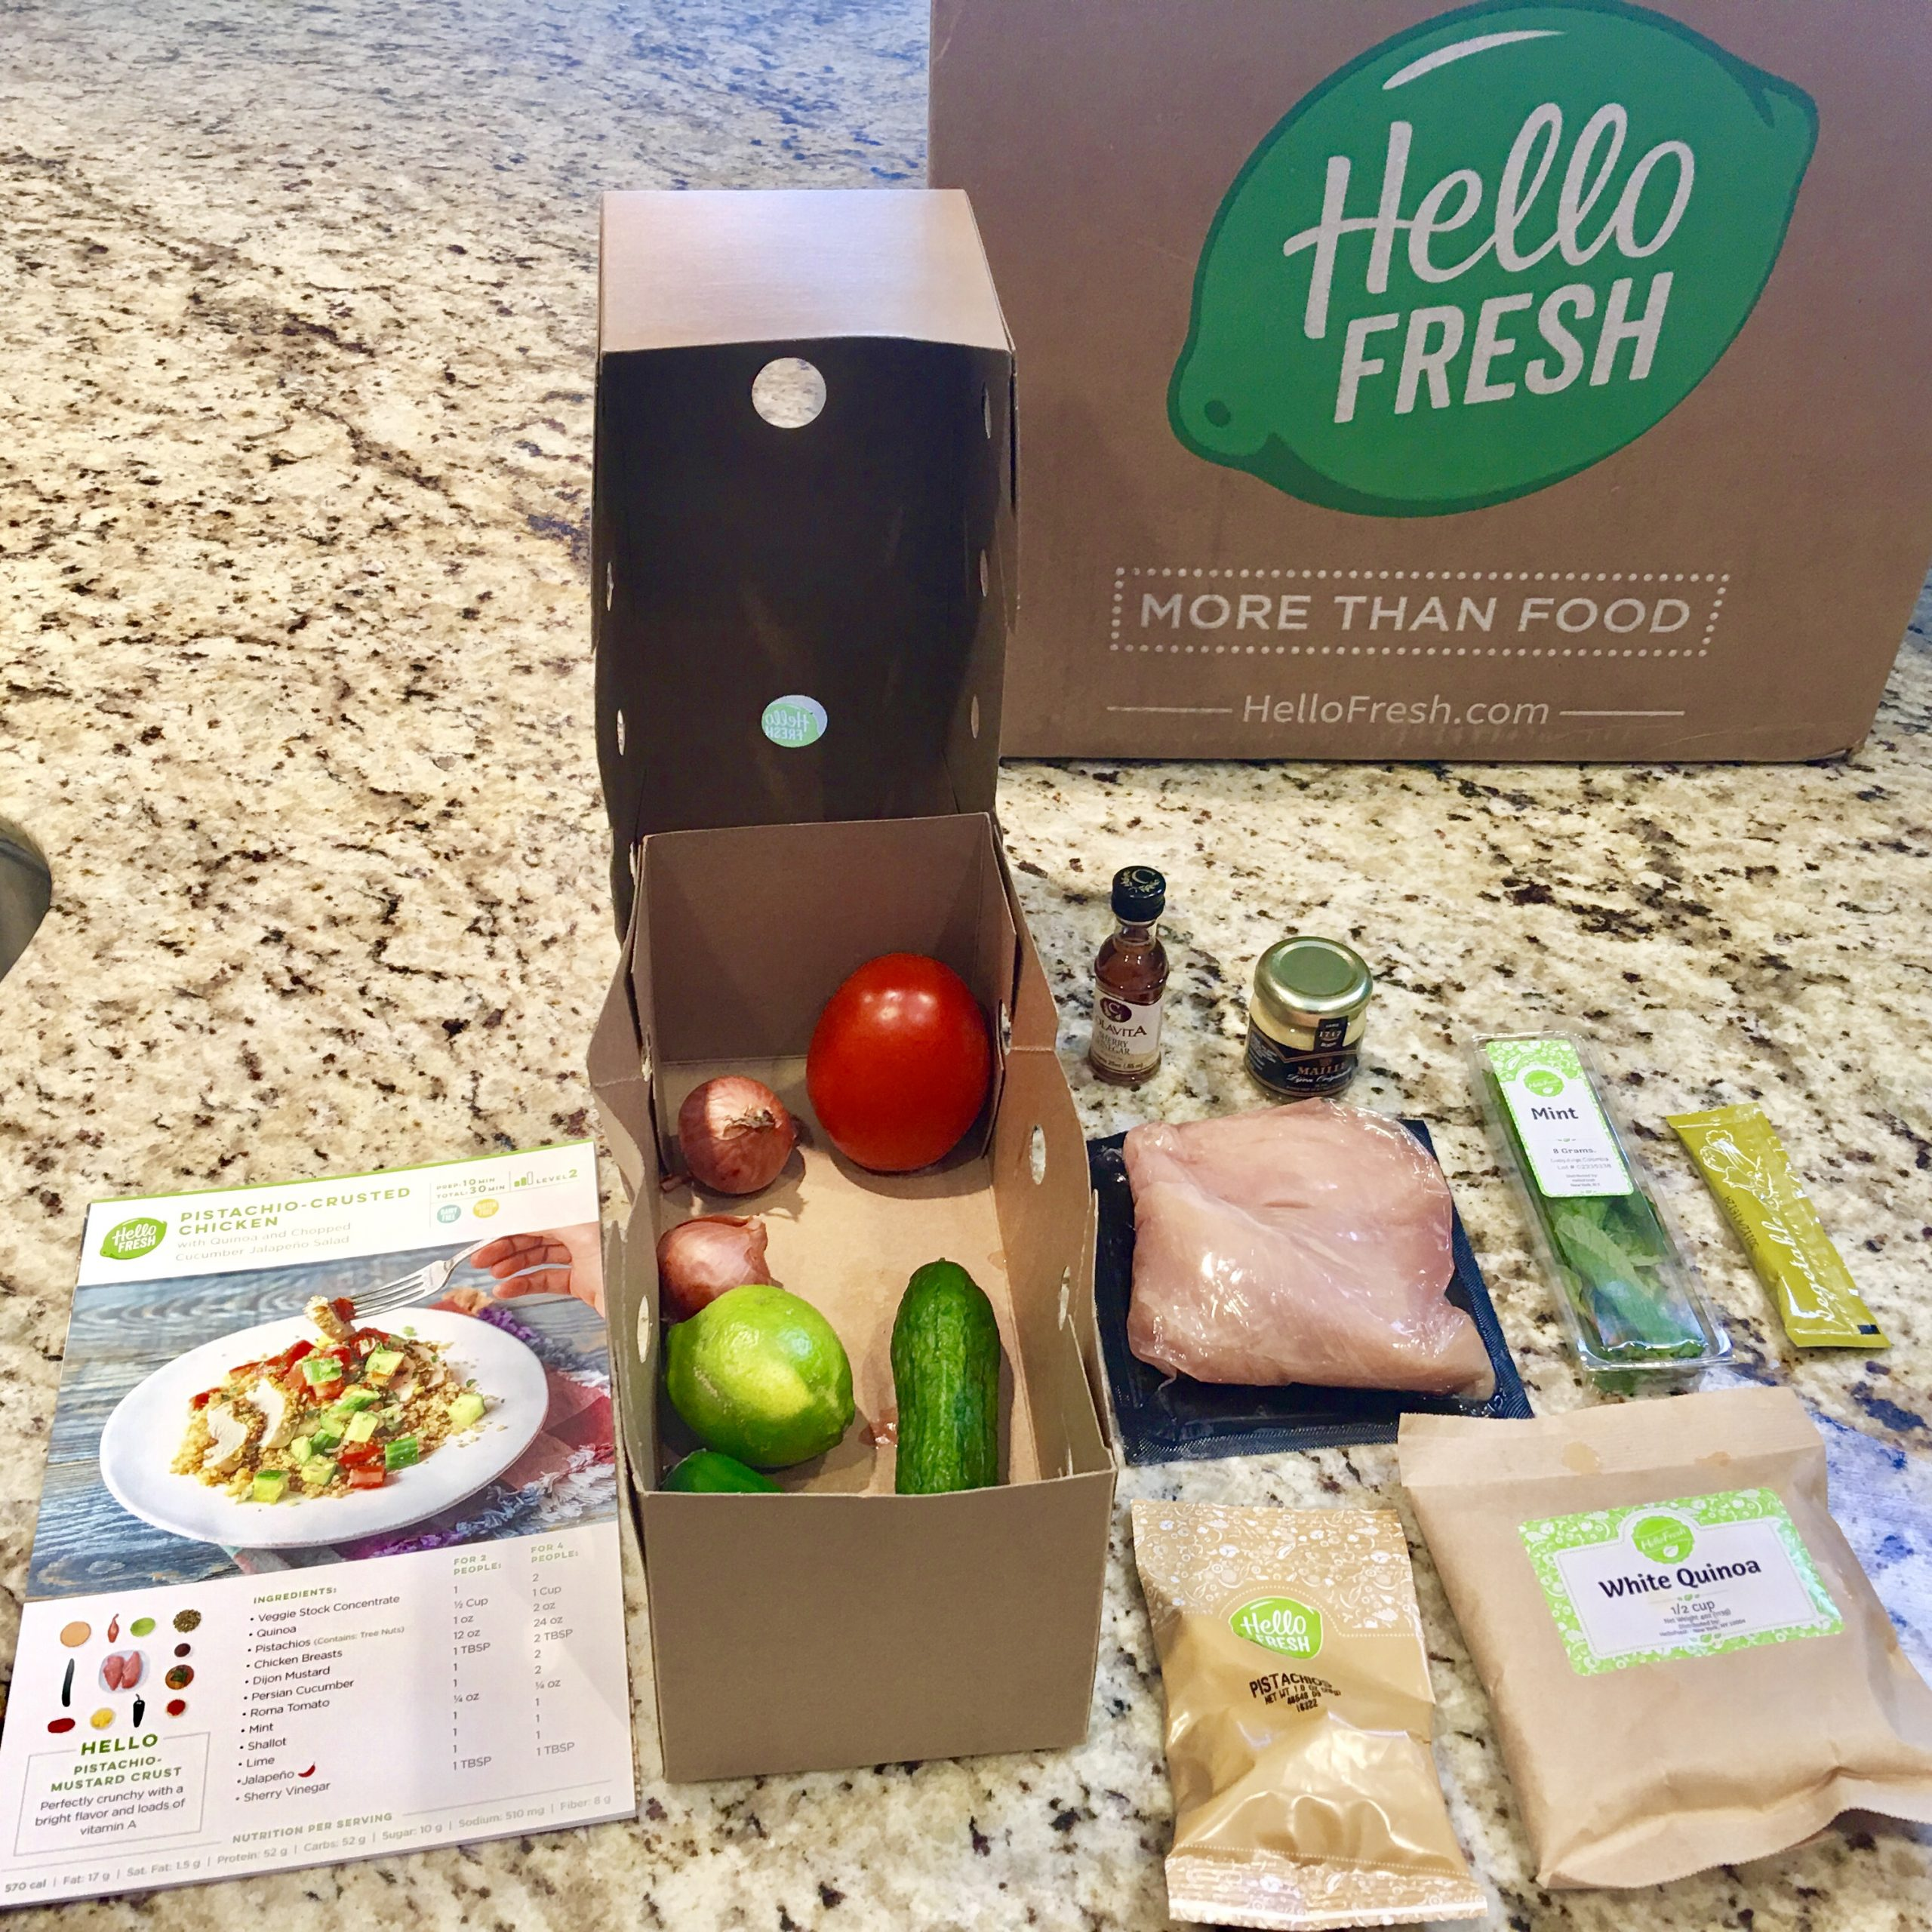 Hellofresh Good Alternative 2020